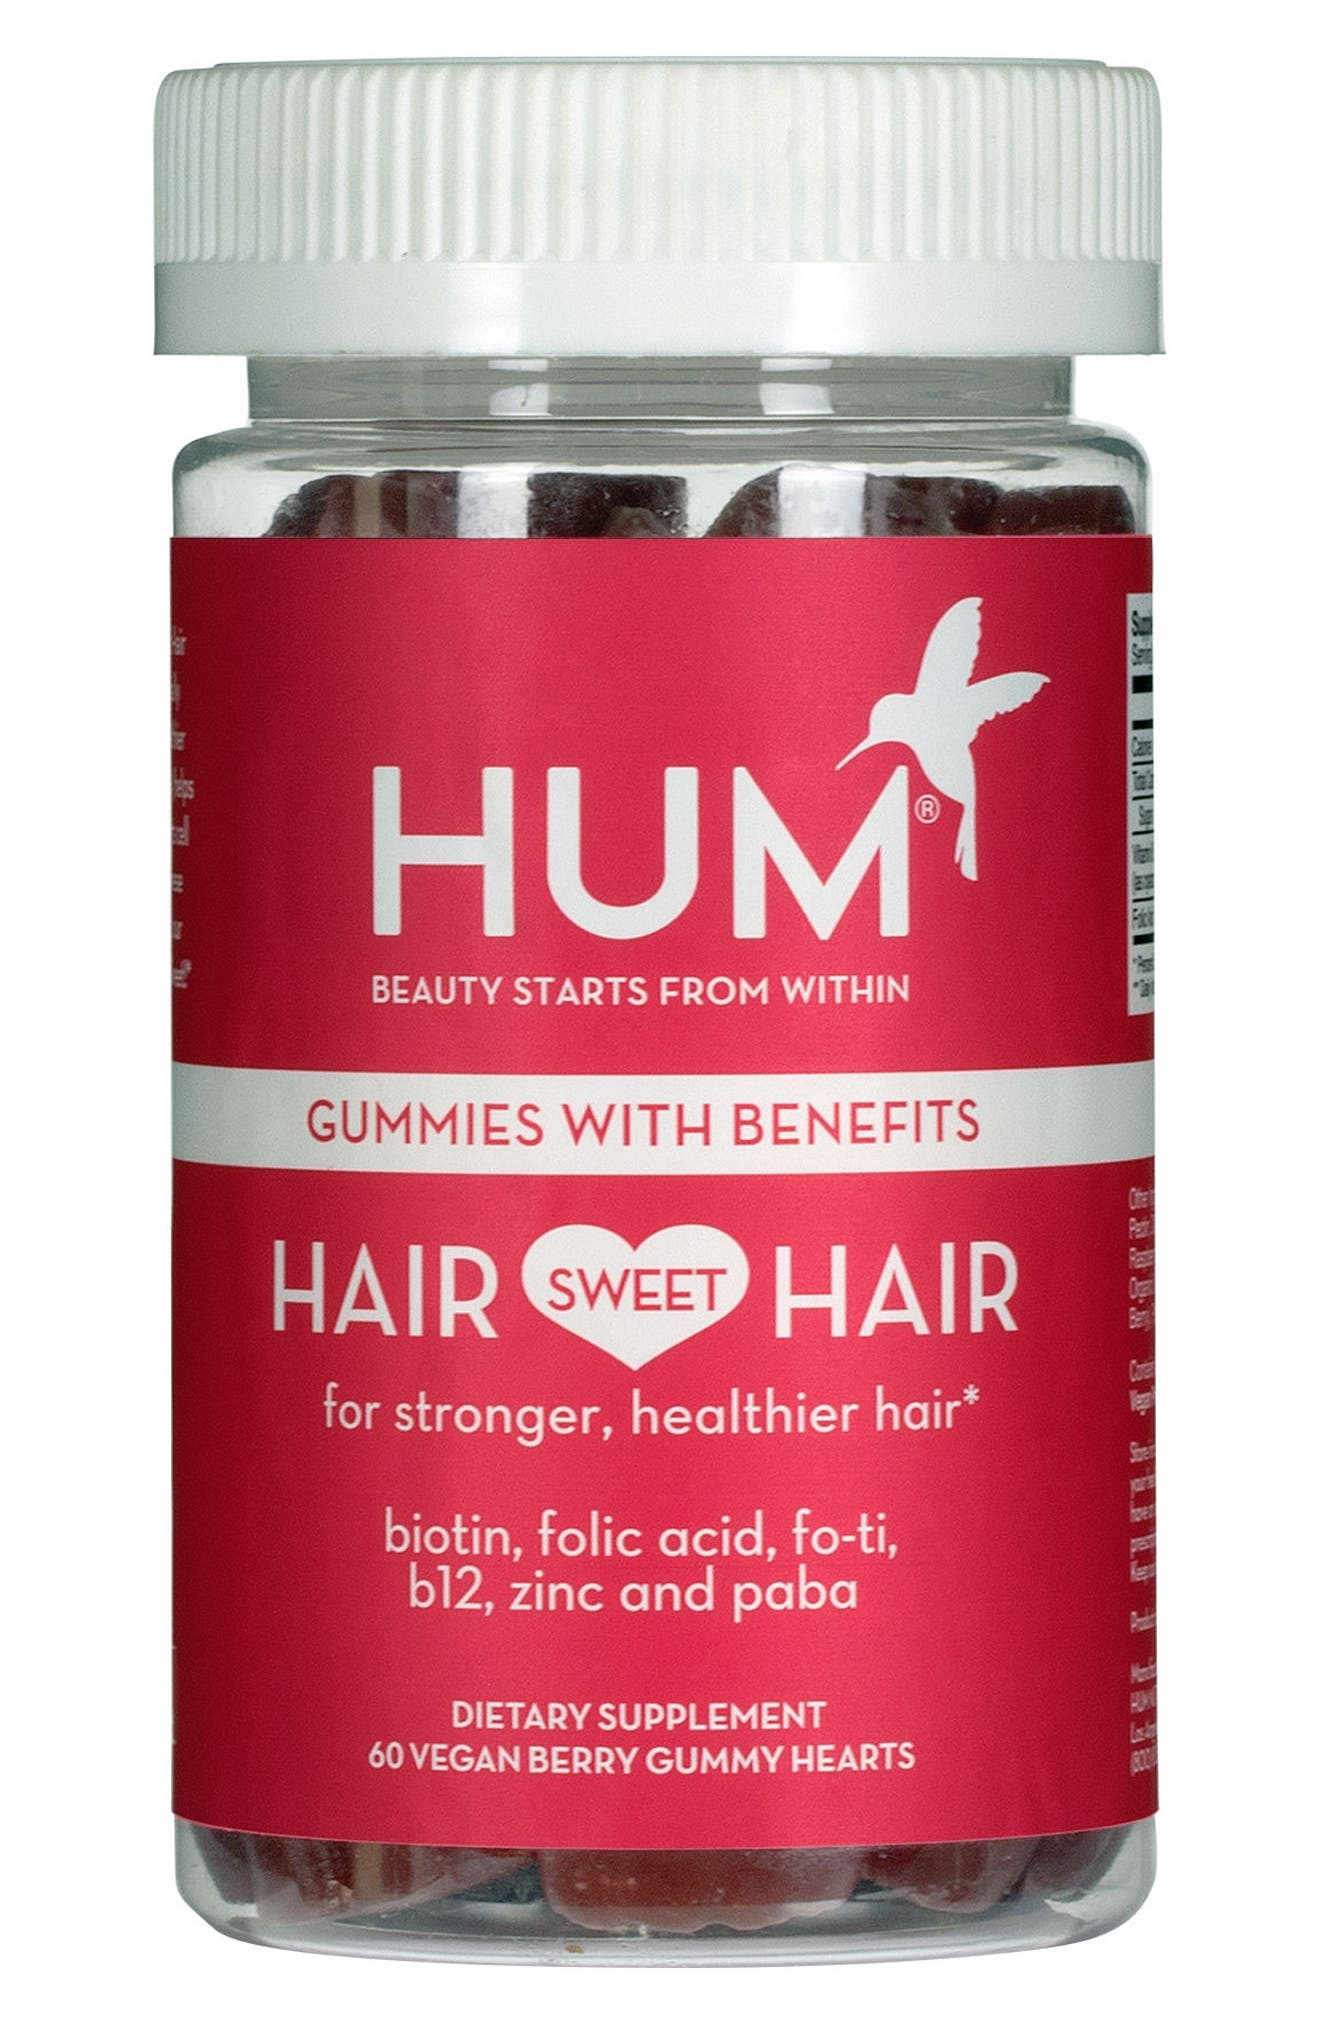 Hair Sweet Hair Gummies Supplement for Healthy Hair,                         Main,                         color, No Color